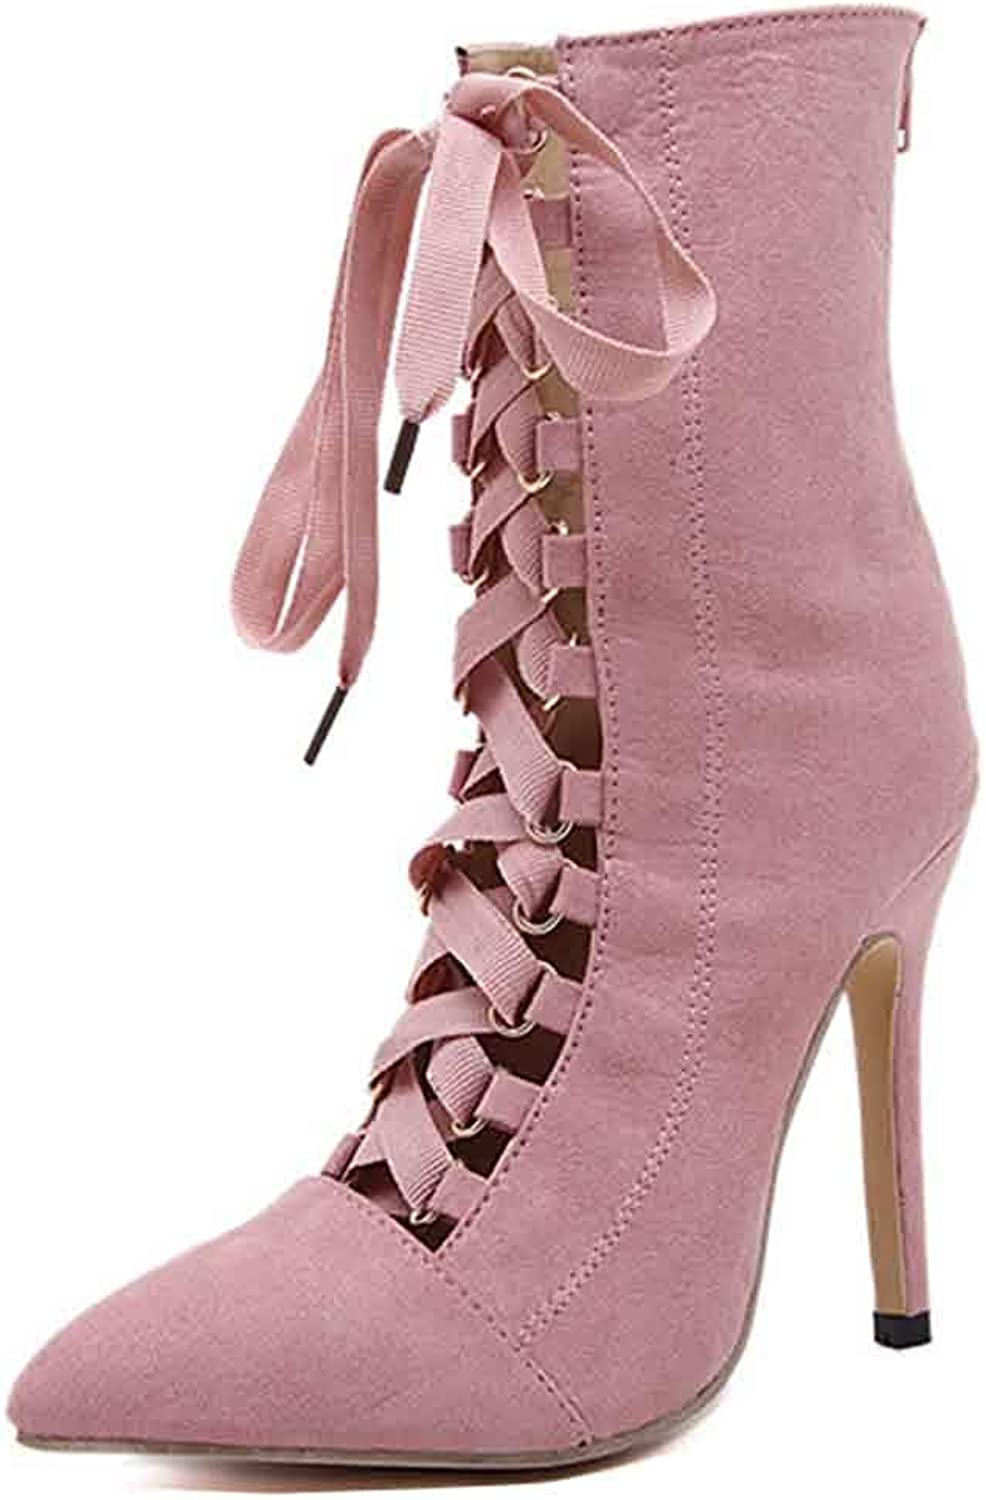 Unm Women's Sexy Cutout Pointed Toe Lace up High Top Stiletto High Heels Ankle Boots with Zipper